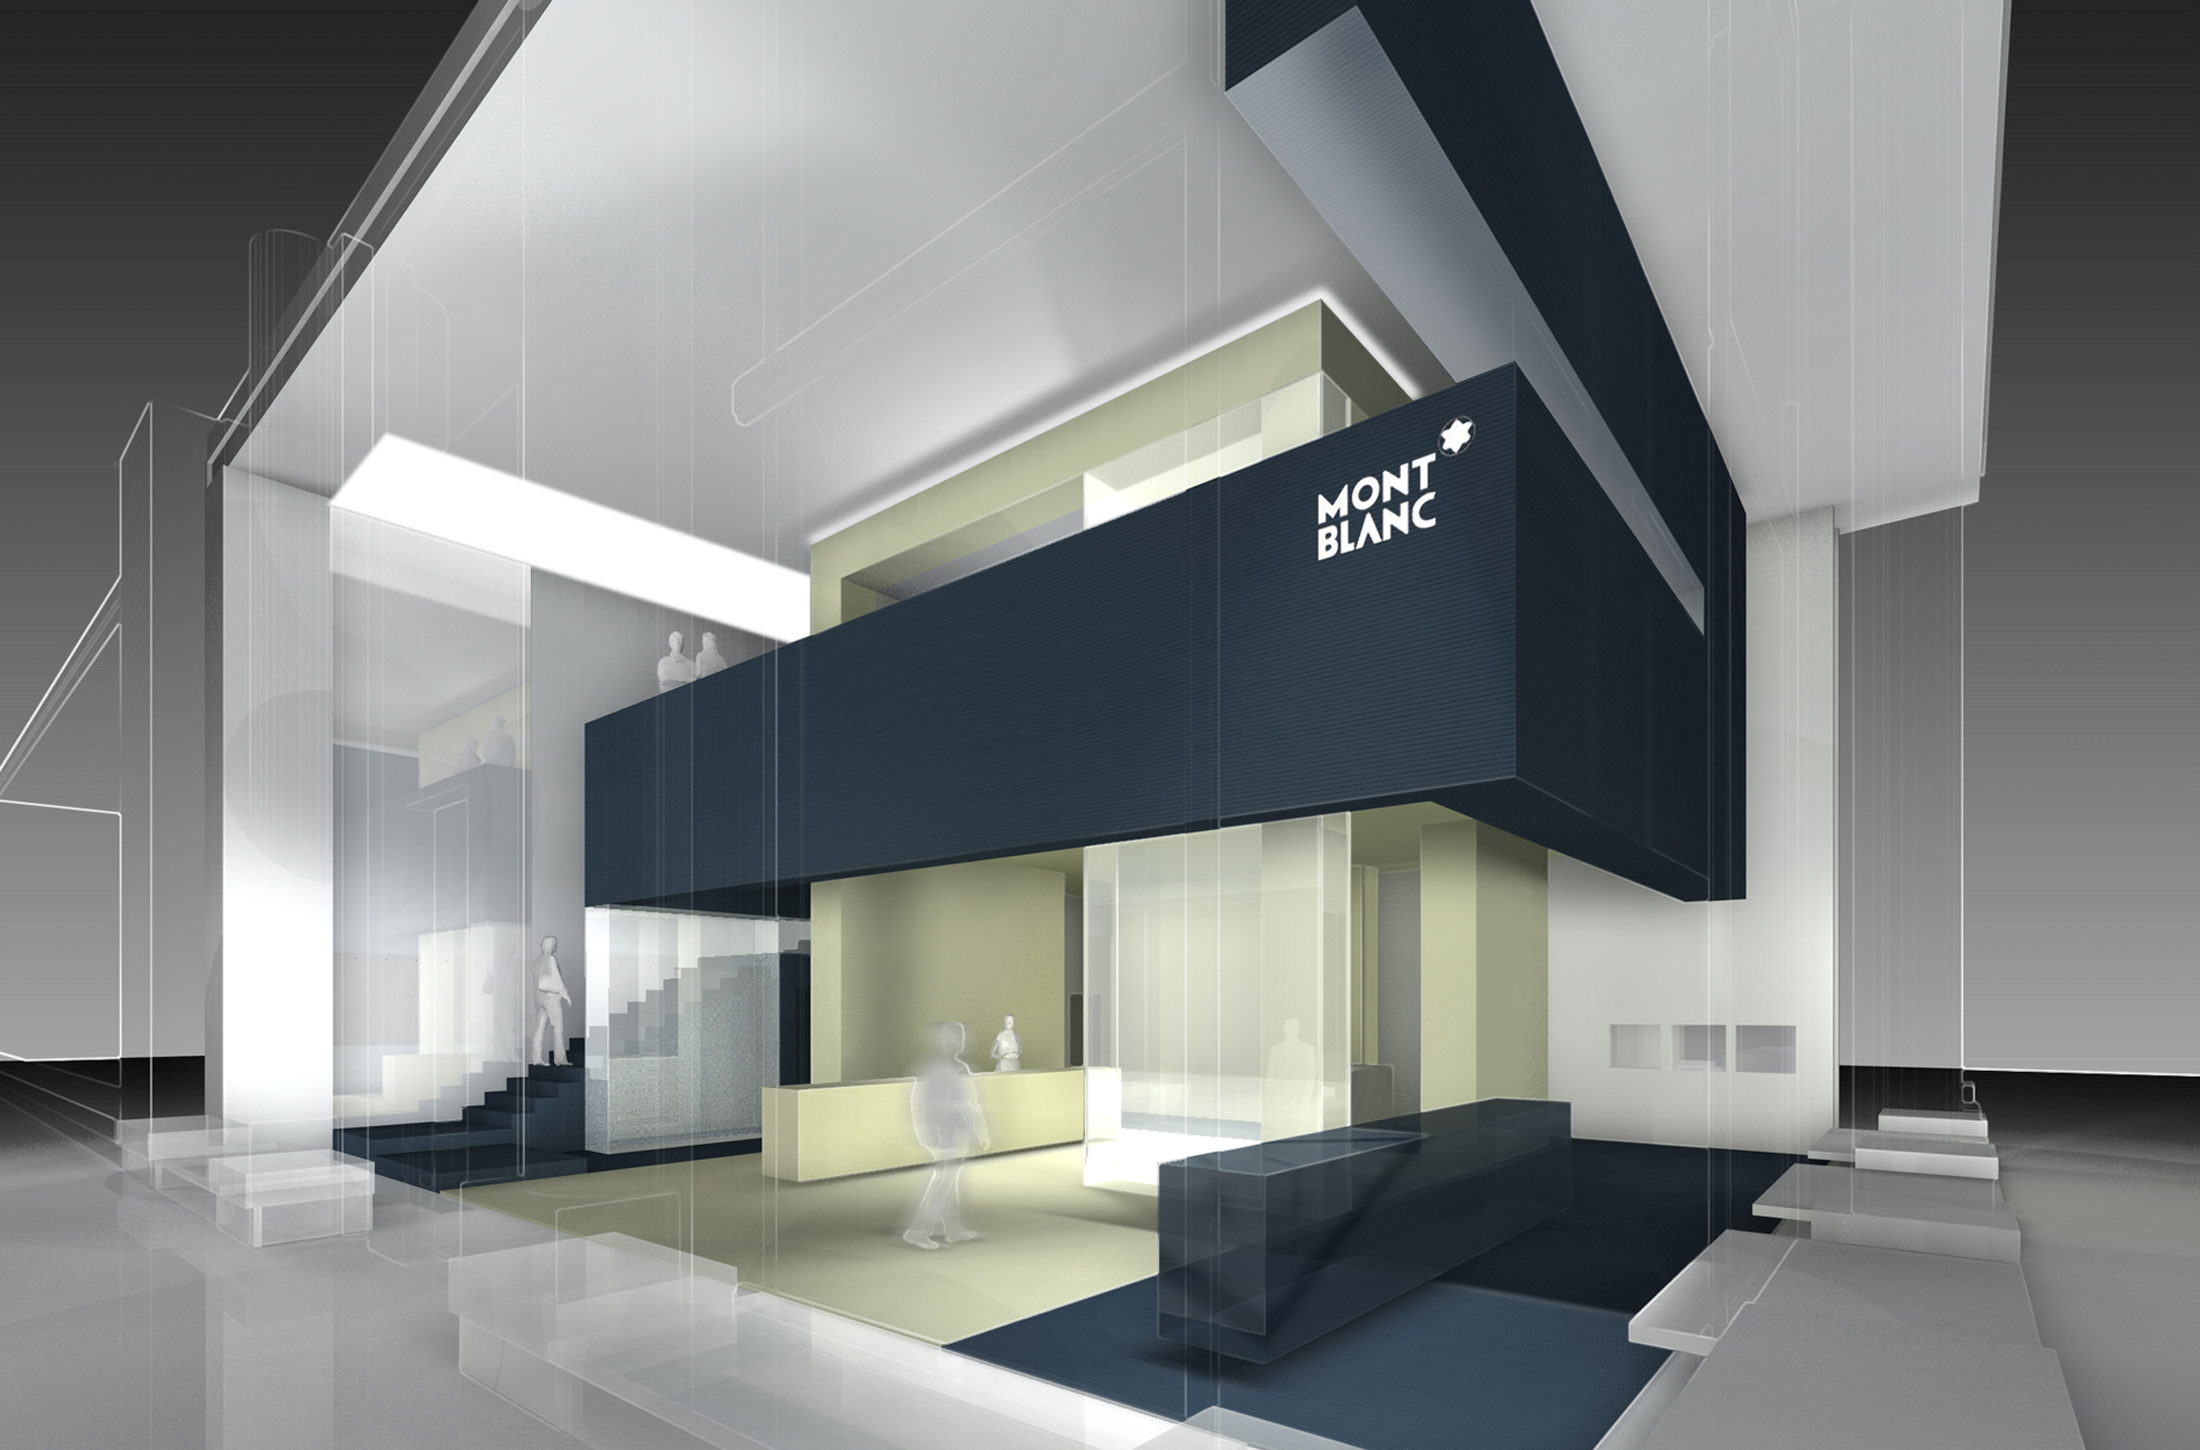 montblanc store new york city dfz architekten. Black Bedroom Furniture Sets. Home Design Ideas